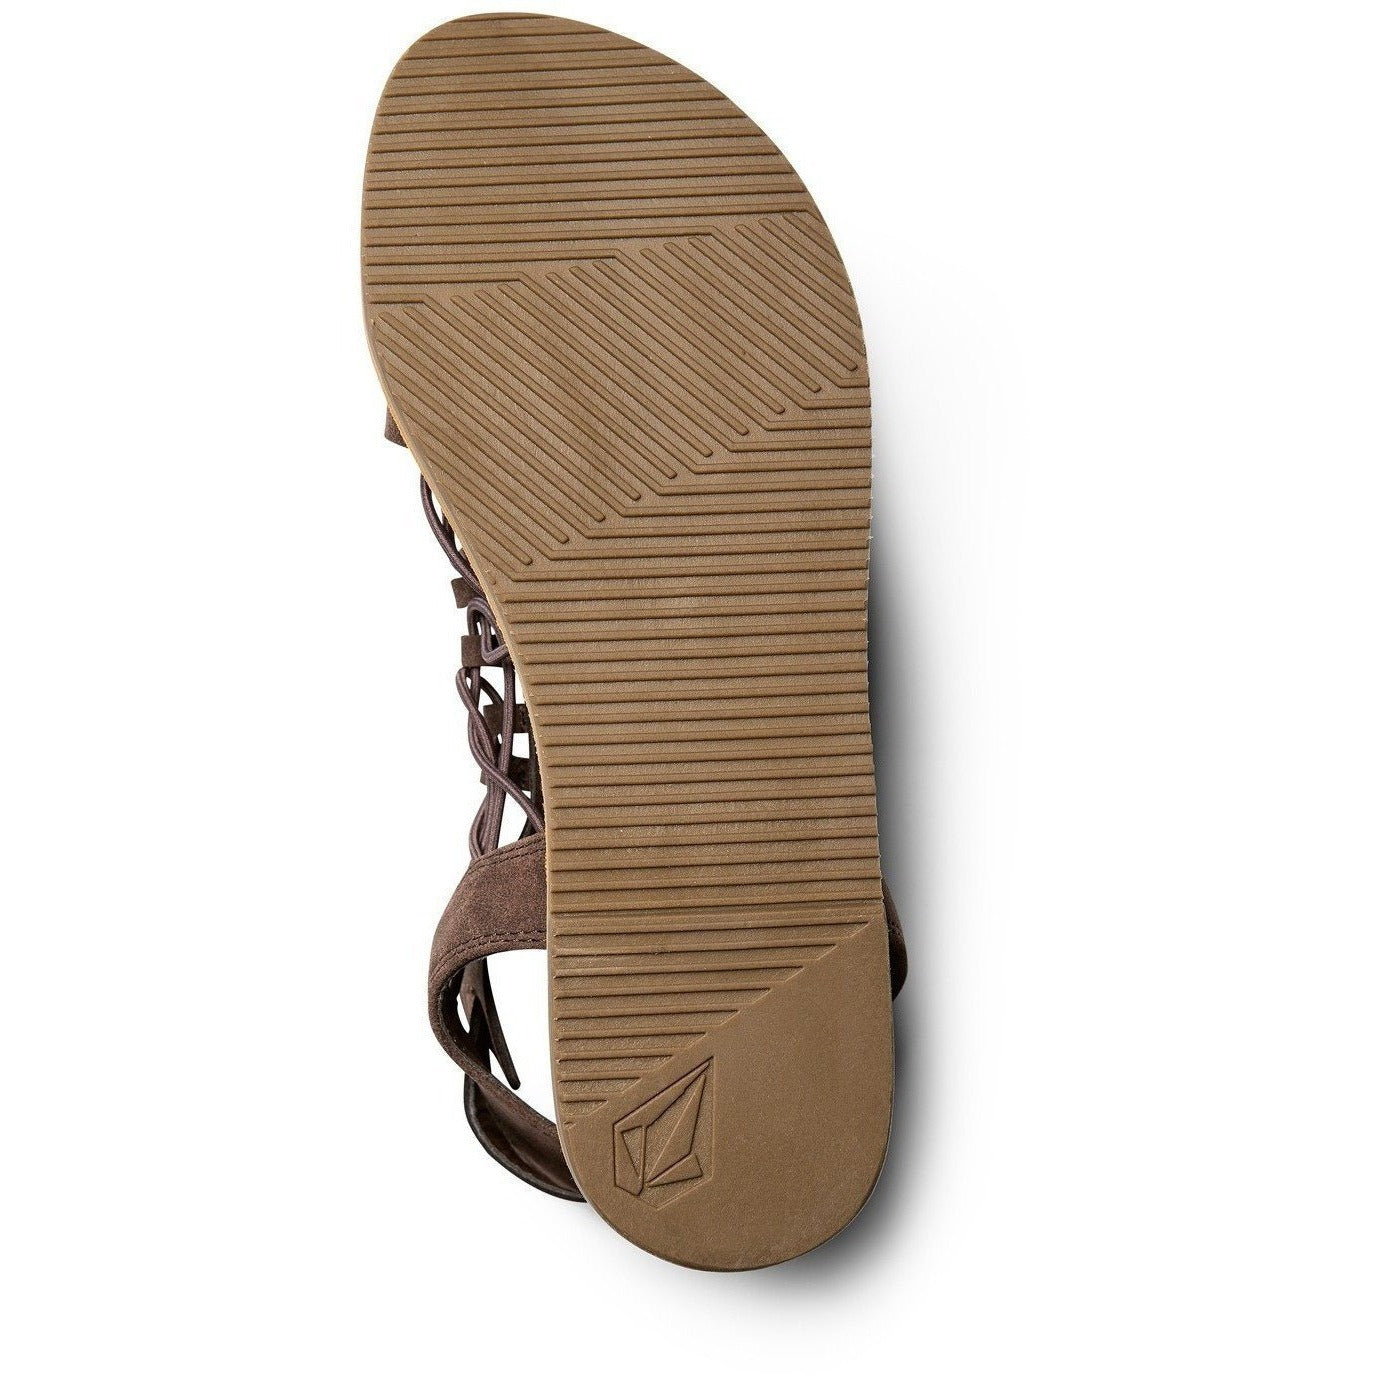 Volcom Caged Bird Women's Sandals - 88 Gear